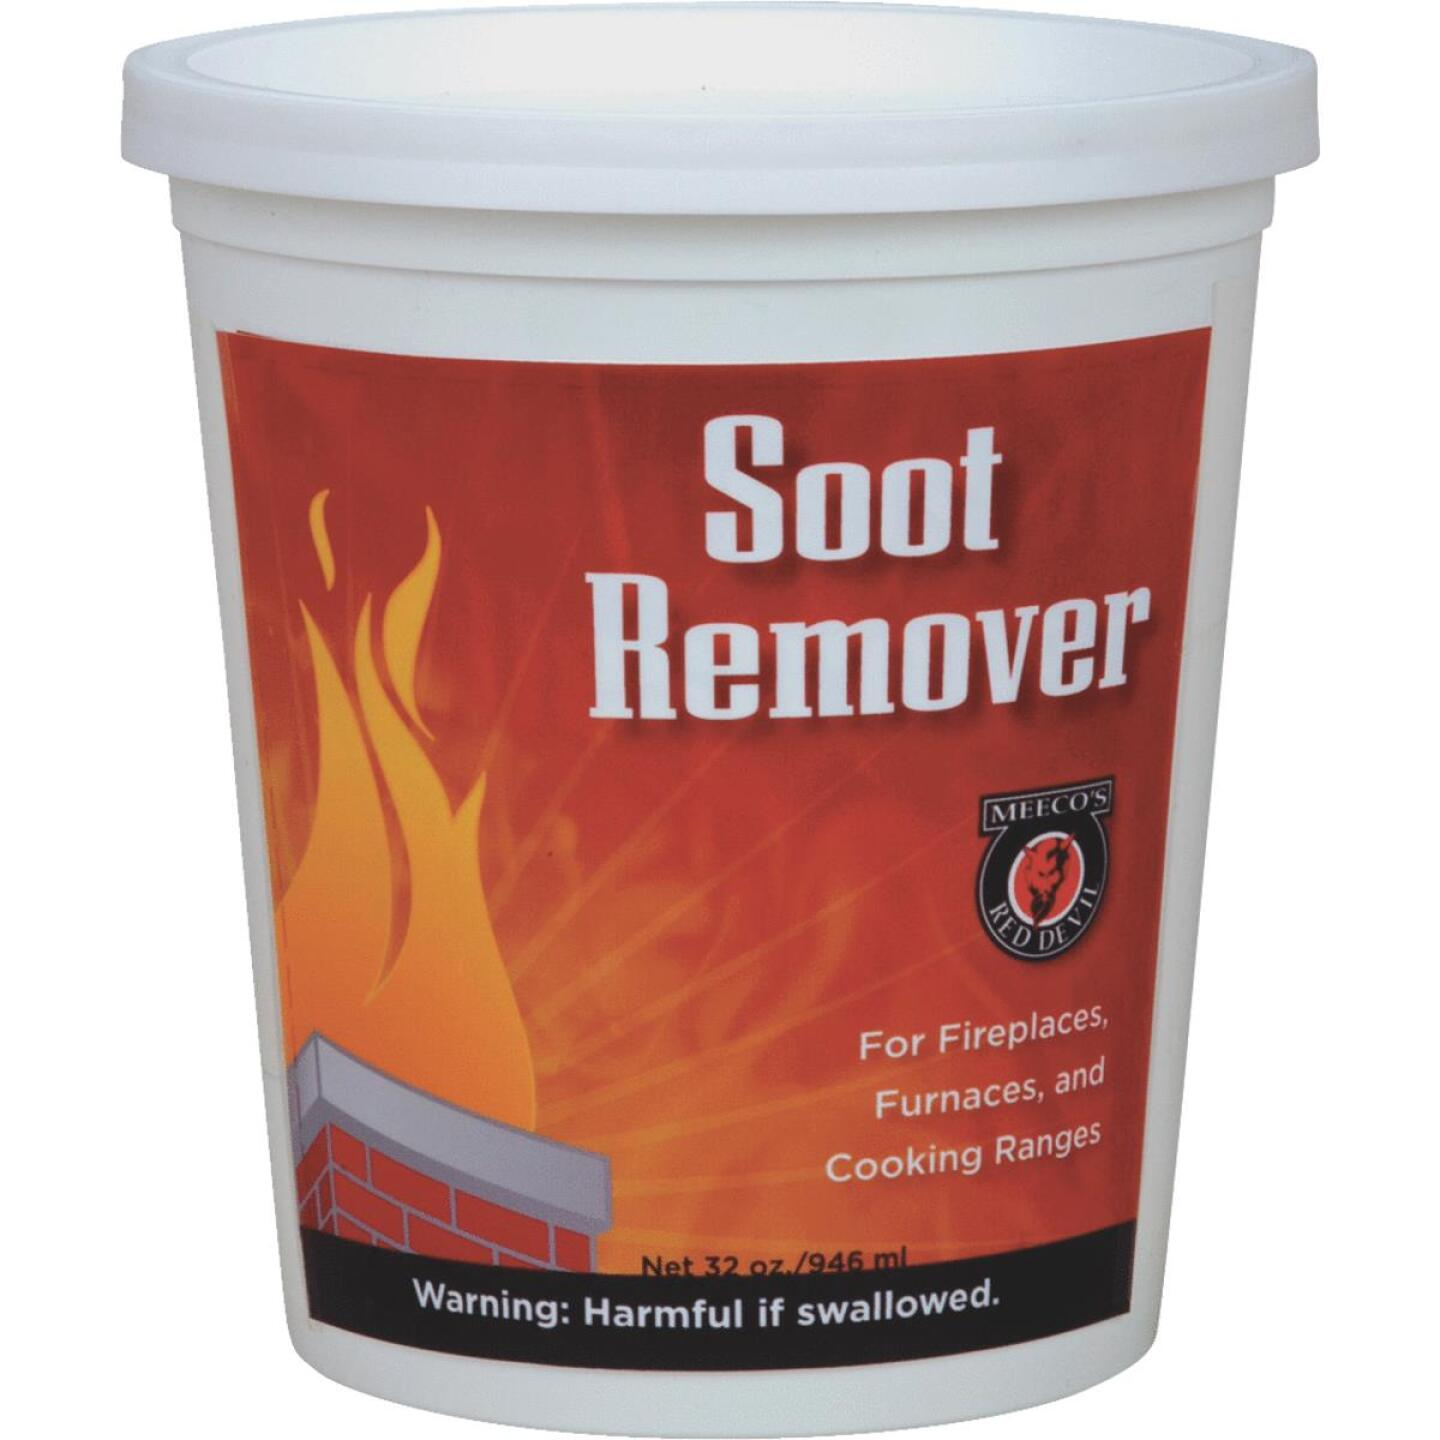 Meeco's Red Devil Pint Powdered Soot Remover Image 1